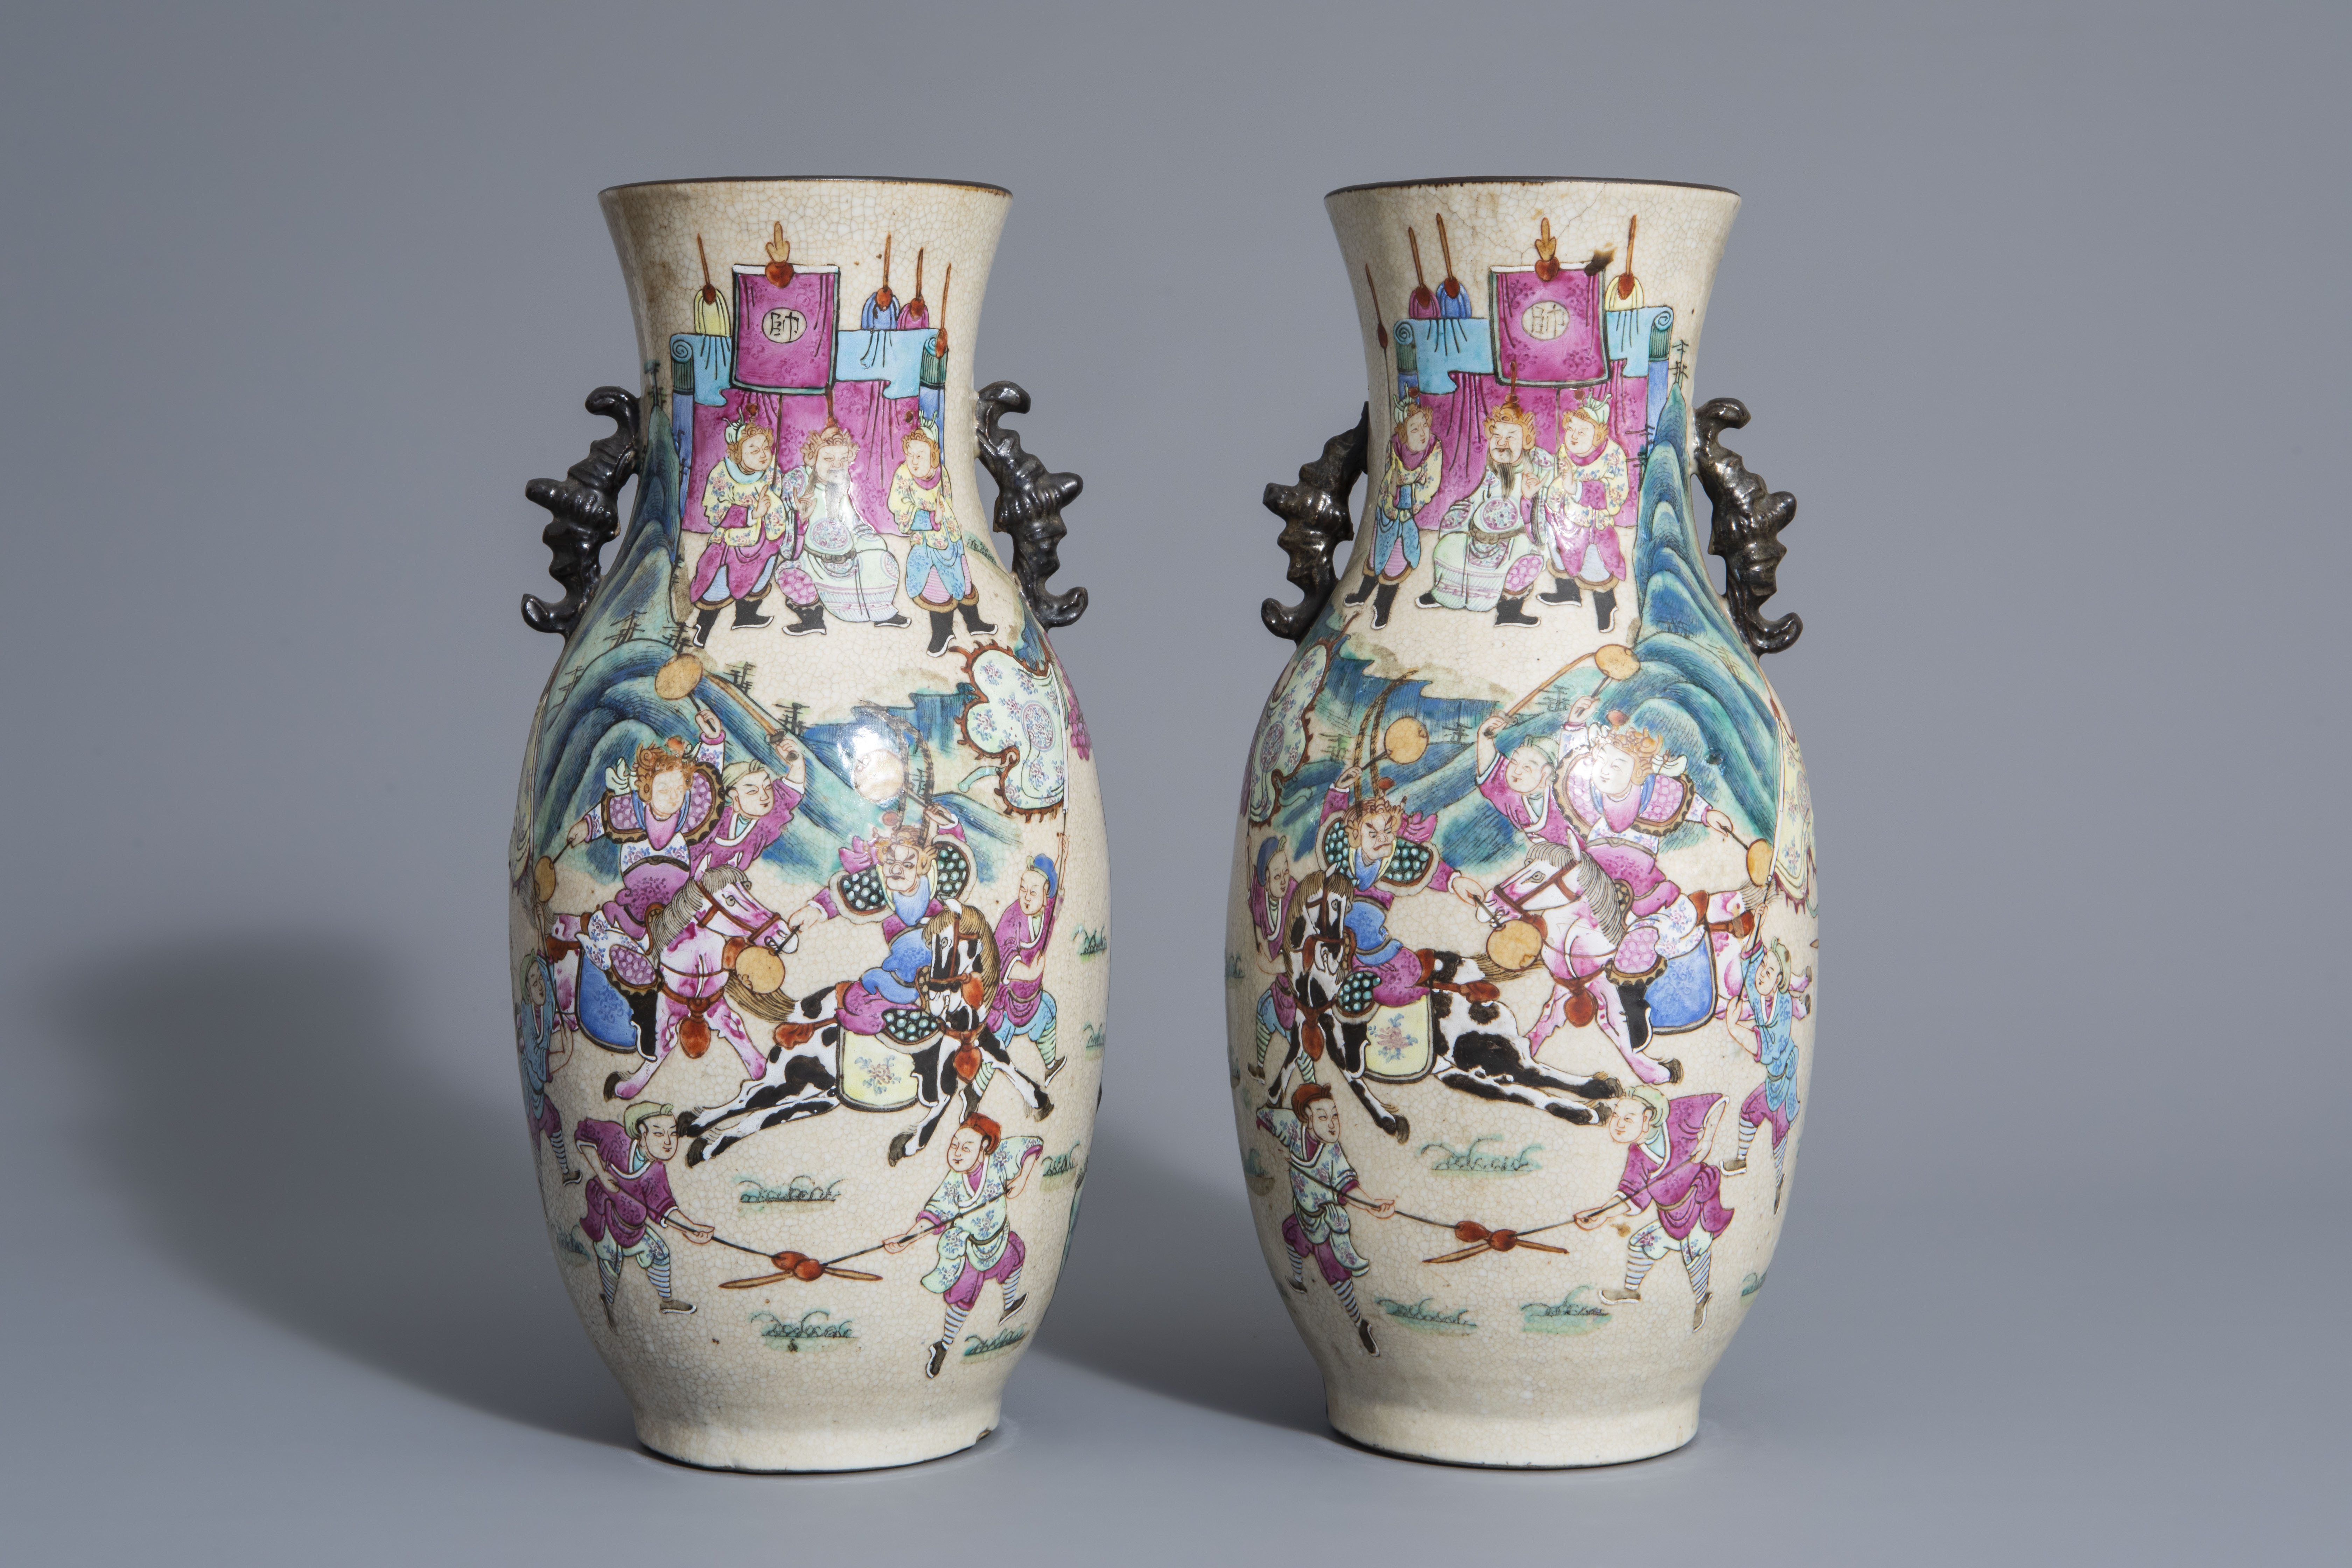 A pair of Chinese Nanking crackle glazed famille rose vases w. warrior scenes on stands, 19th C. - Image 2 of 7